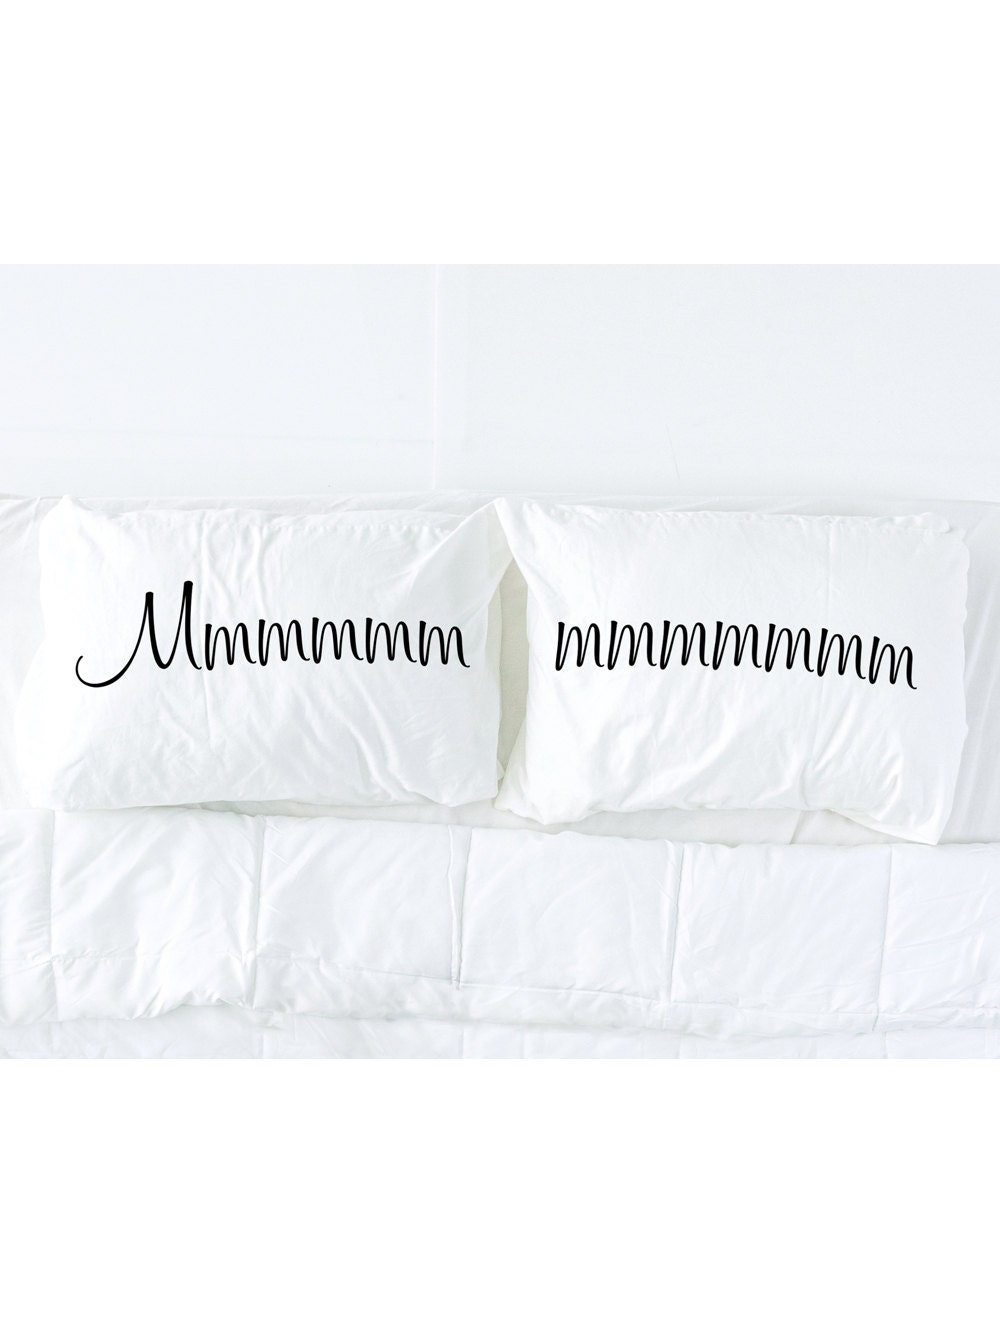 his and hers pillowcases mmmmm imprinted pillowcase set couples